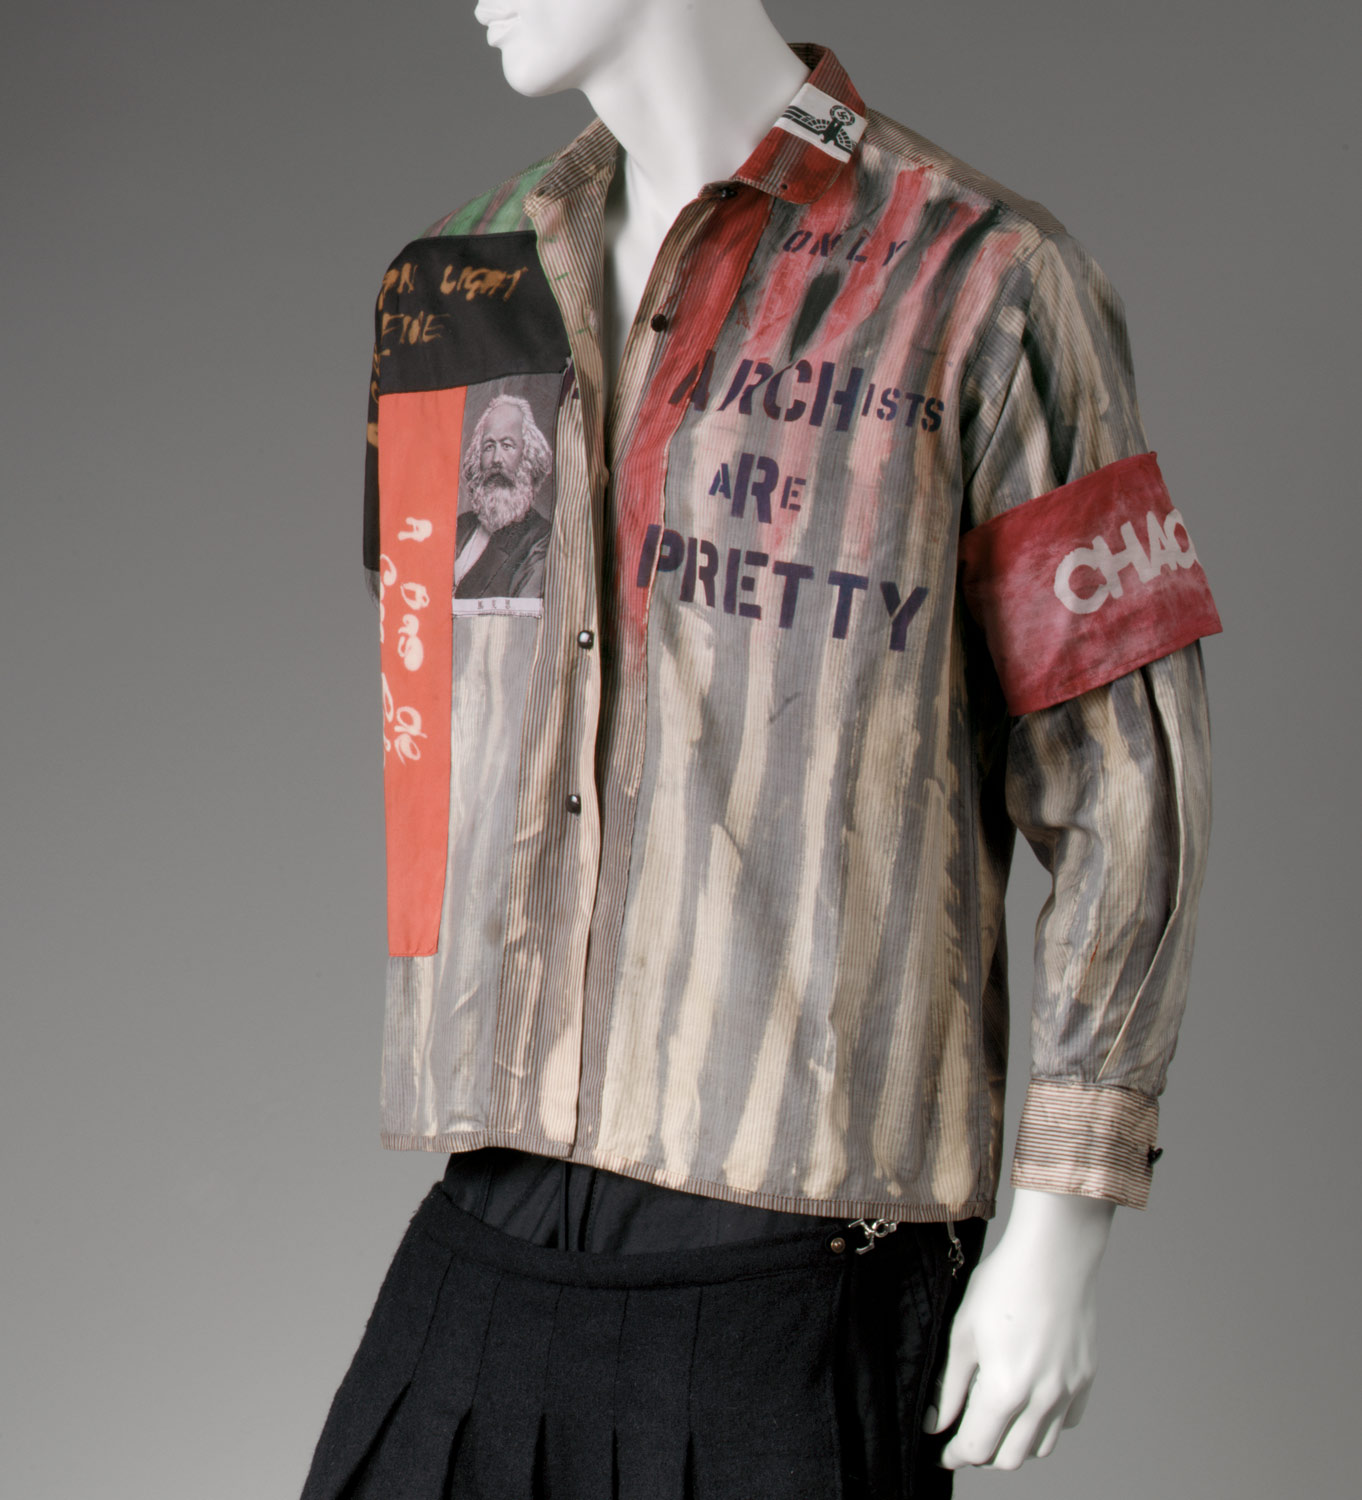 shirt vivienne westwood malcolm mclaren work of shirt